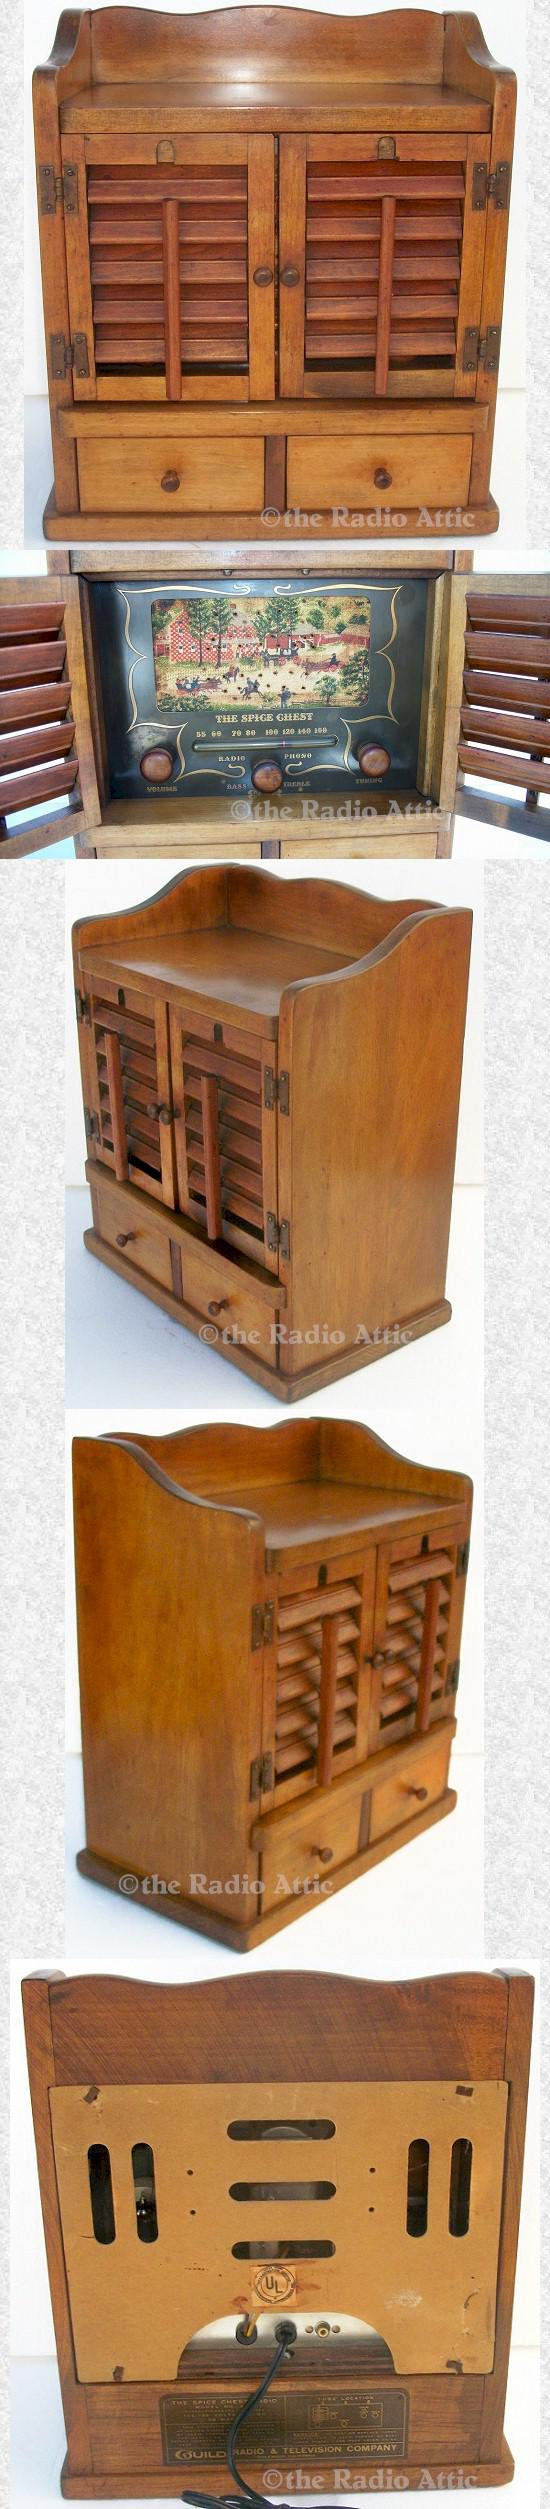 Guild 484 Spice Chest (1956)